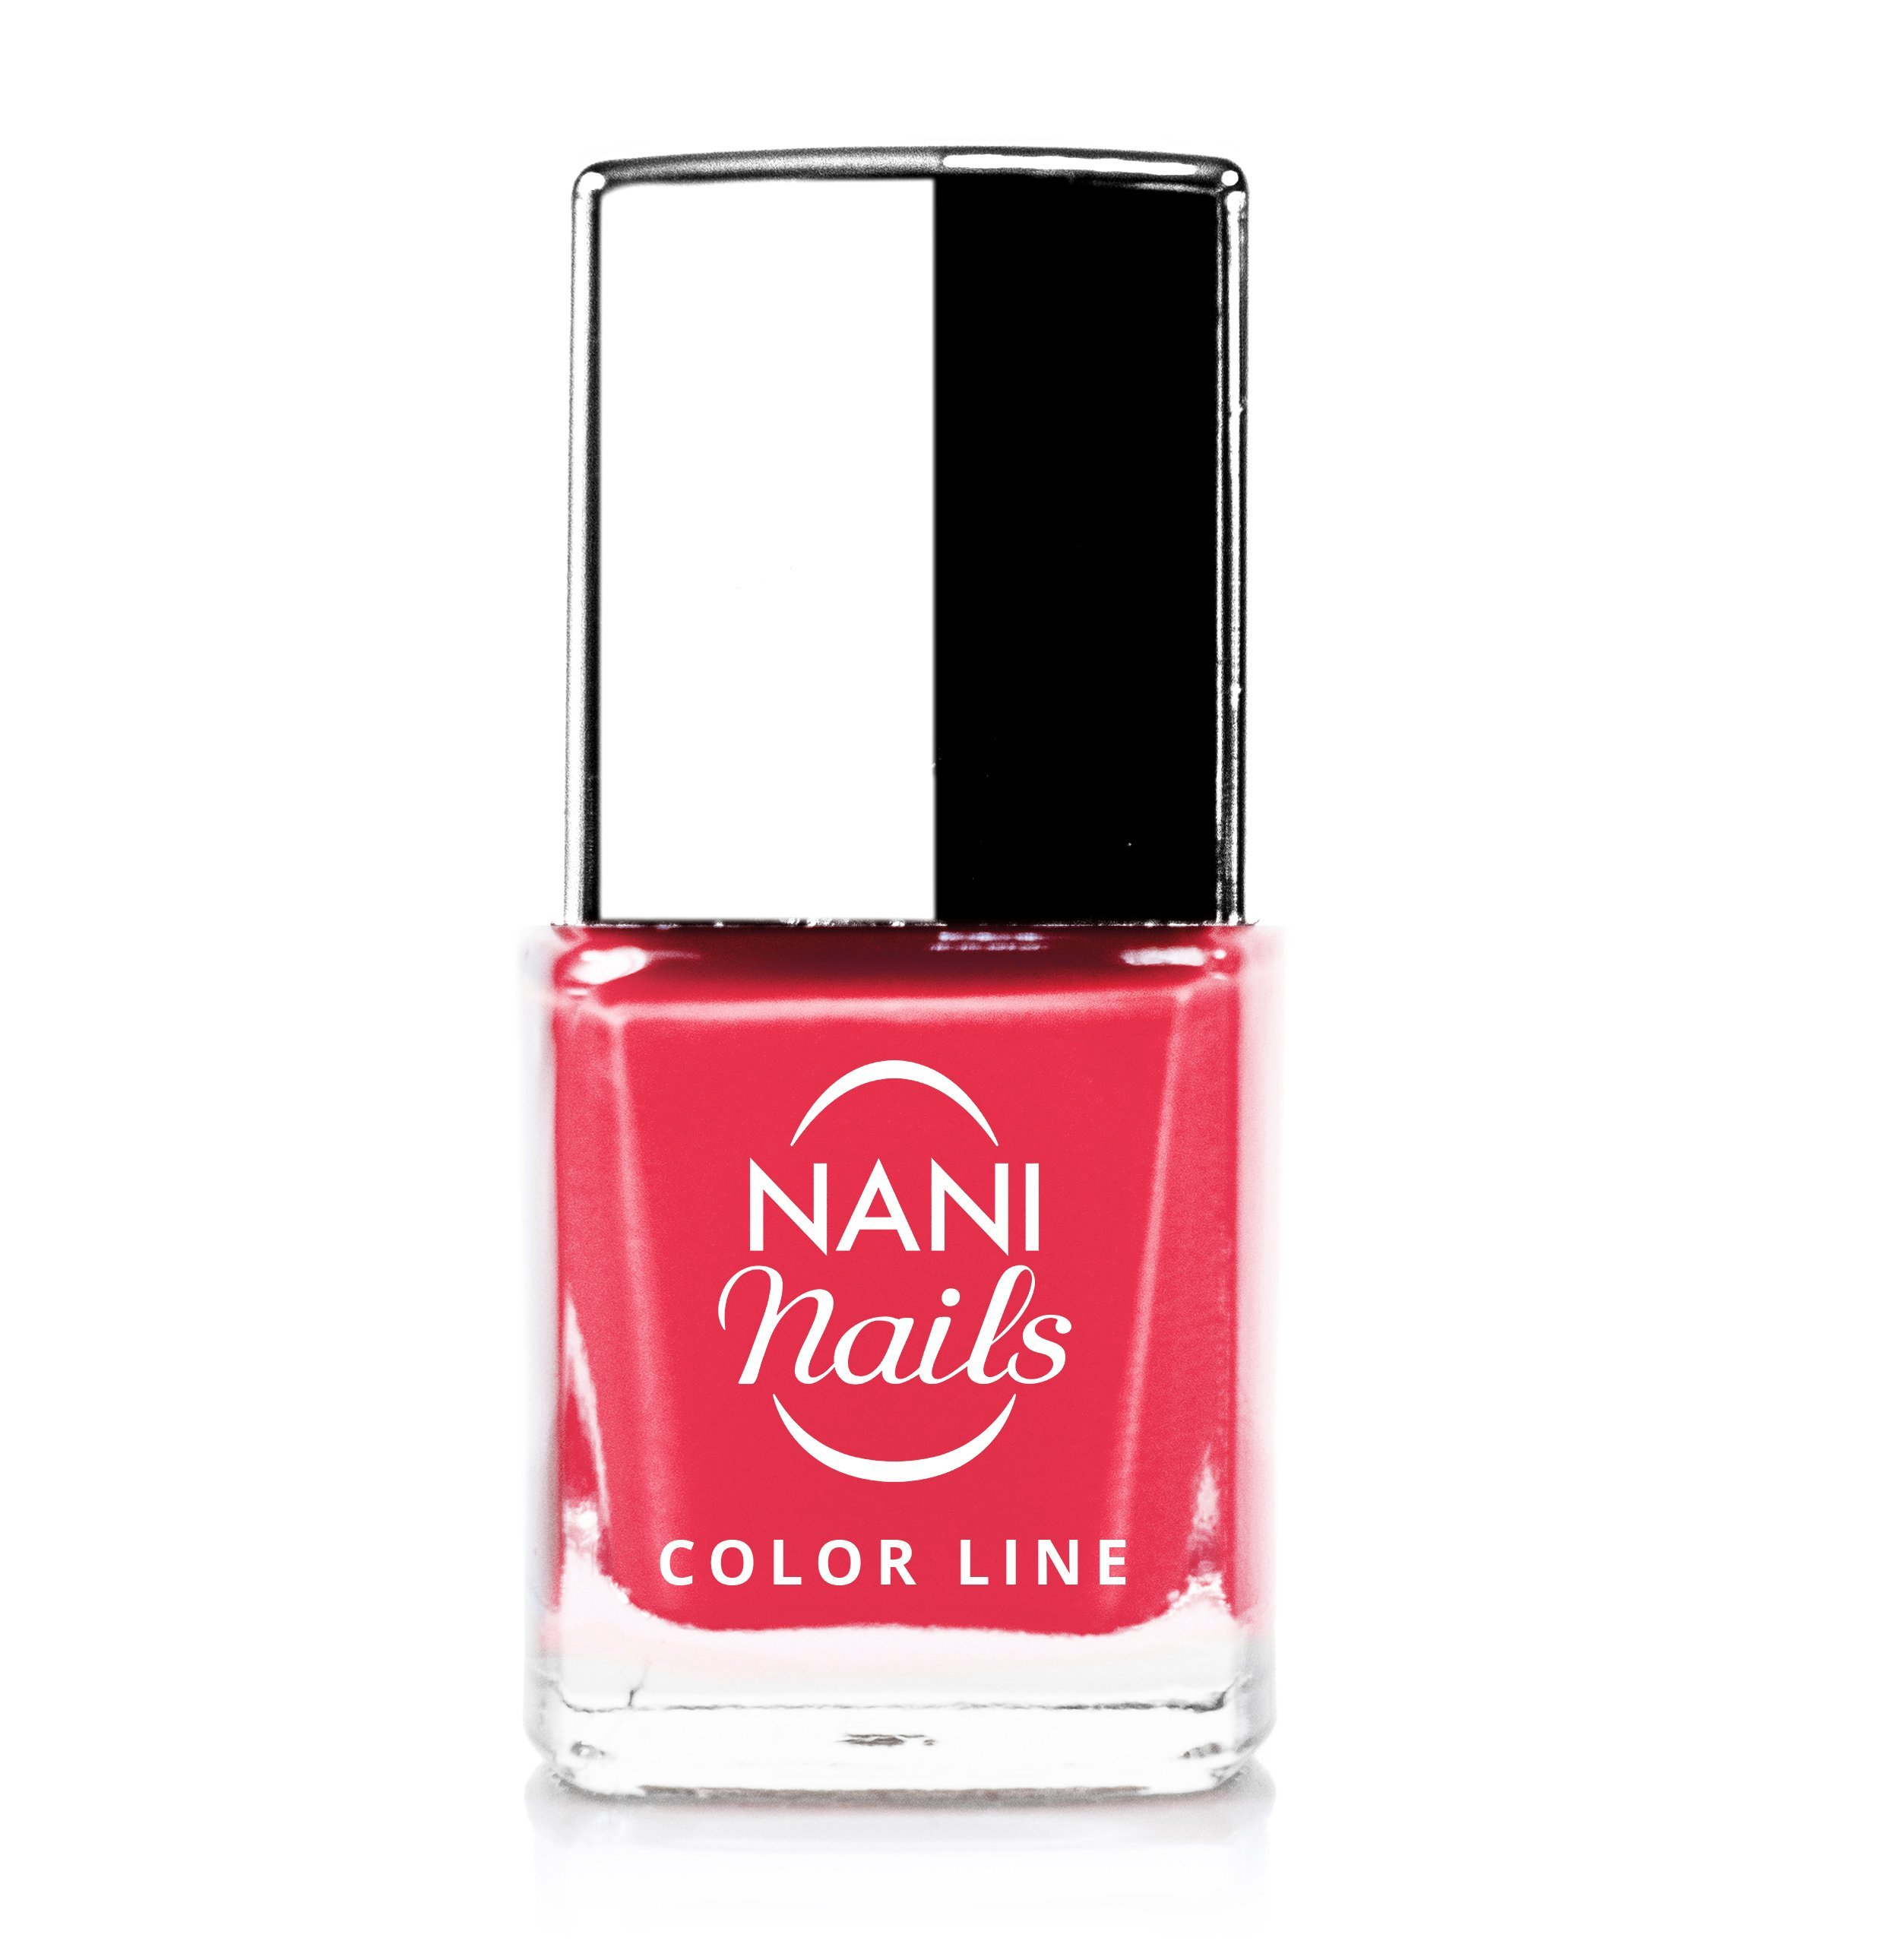 NANI lak Color Line 9 ml - 116, pieskový